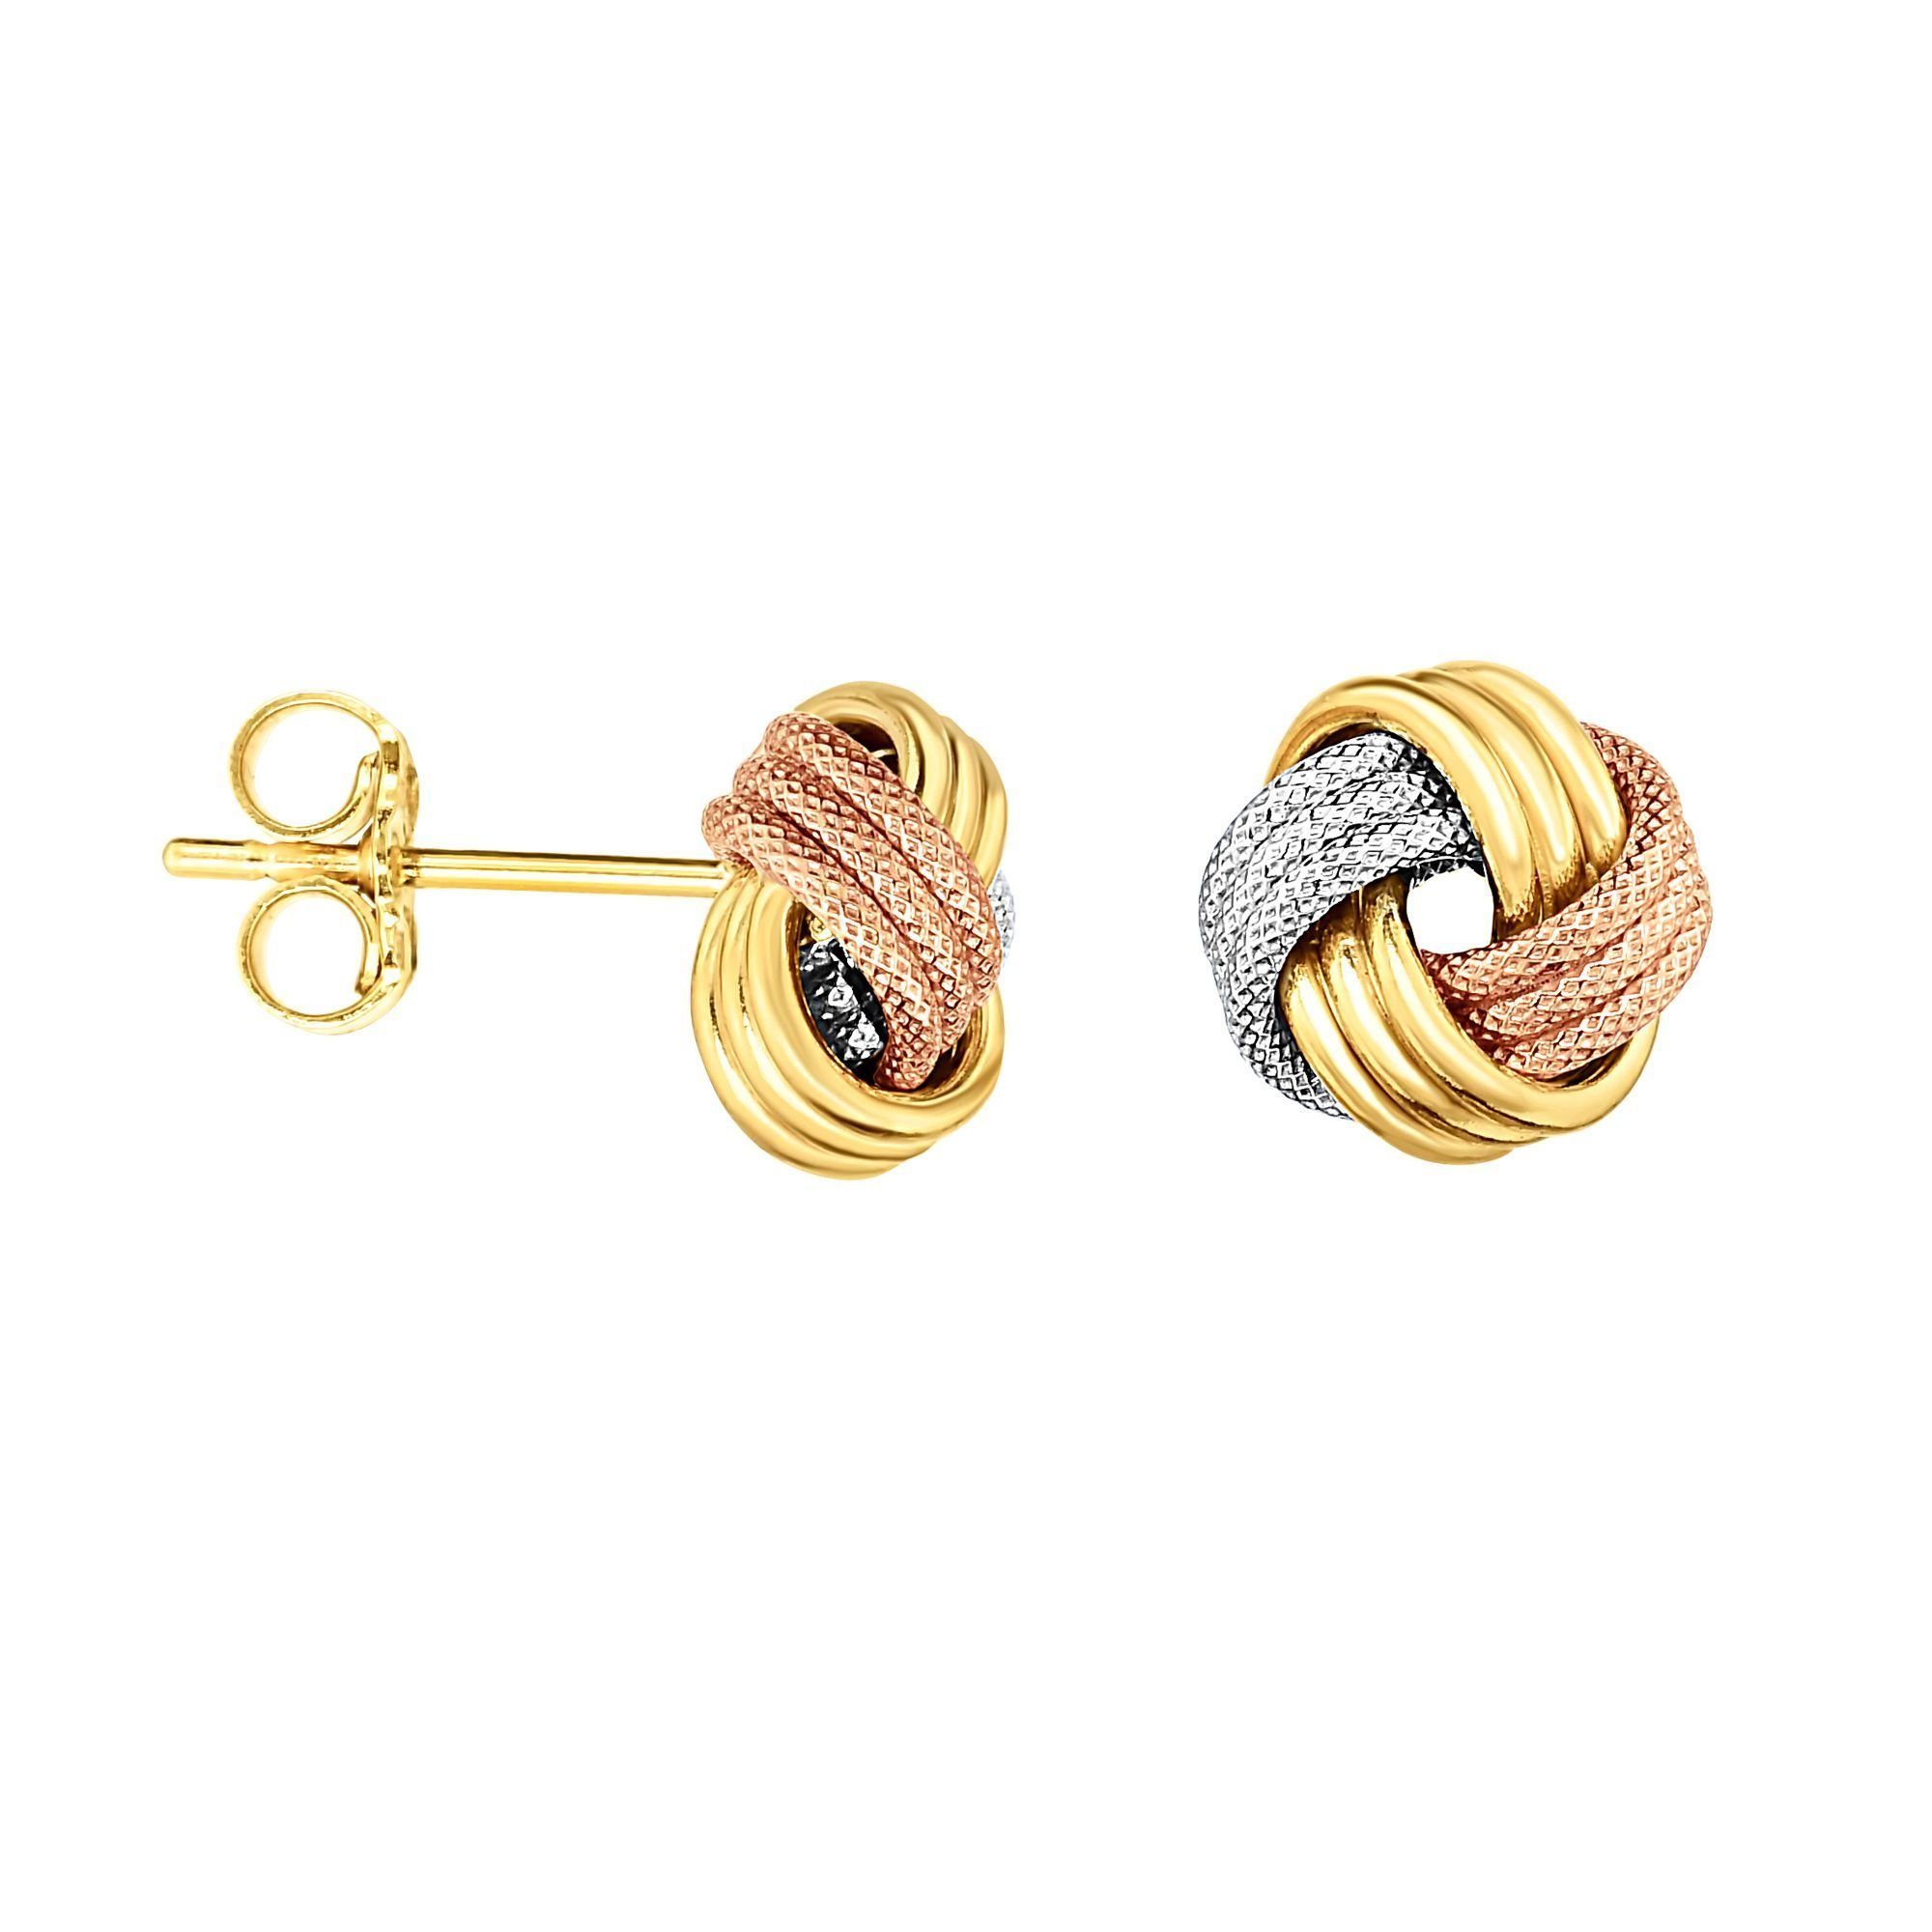 14k Yellow White Pink Tri-color Gold Love Knot Stud Earrings 10 Mm